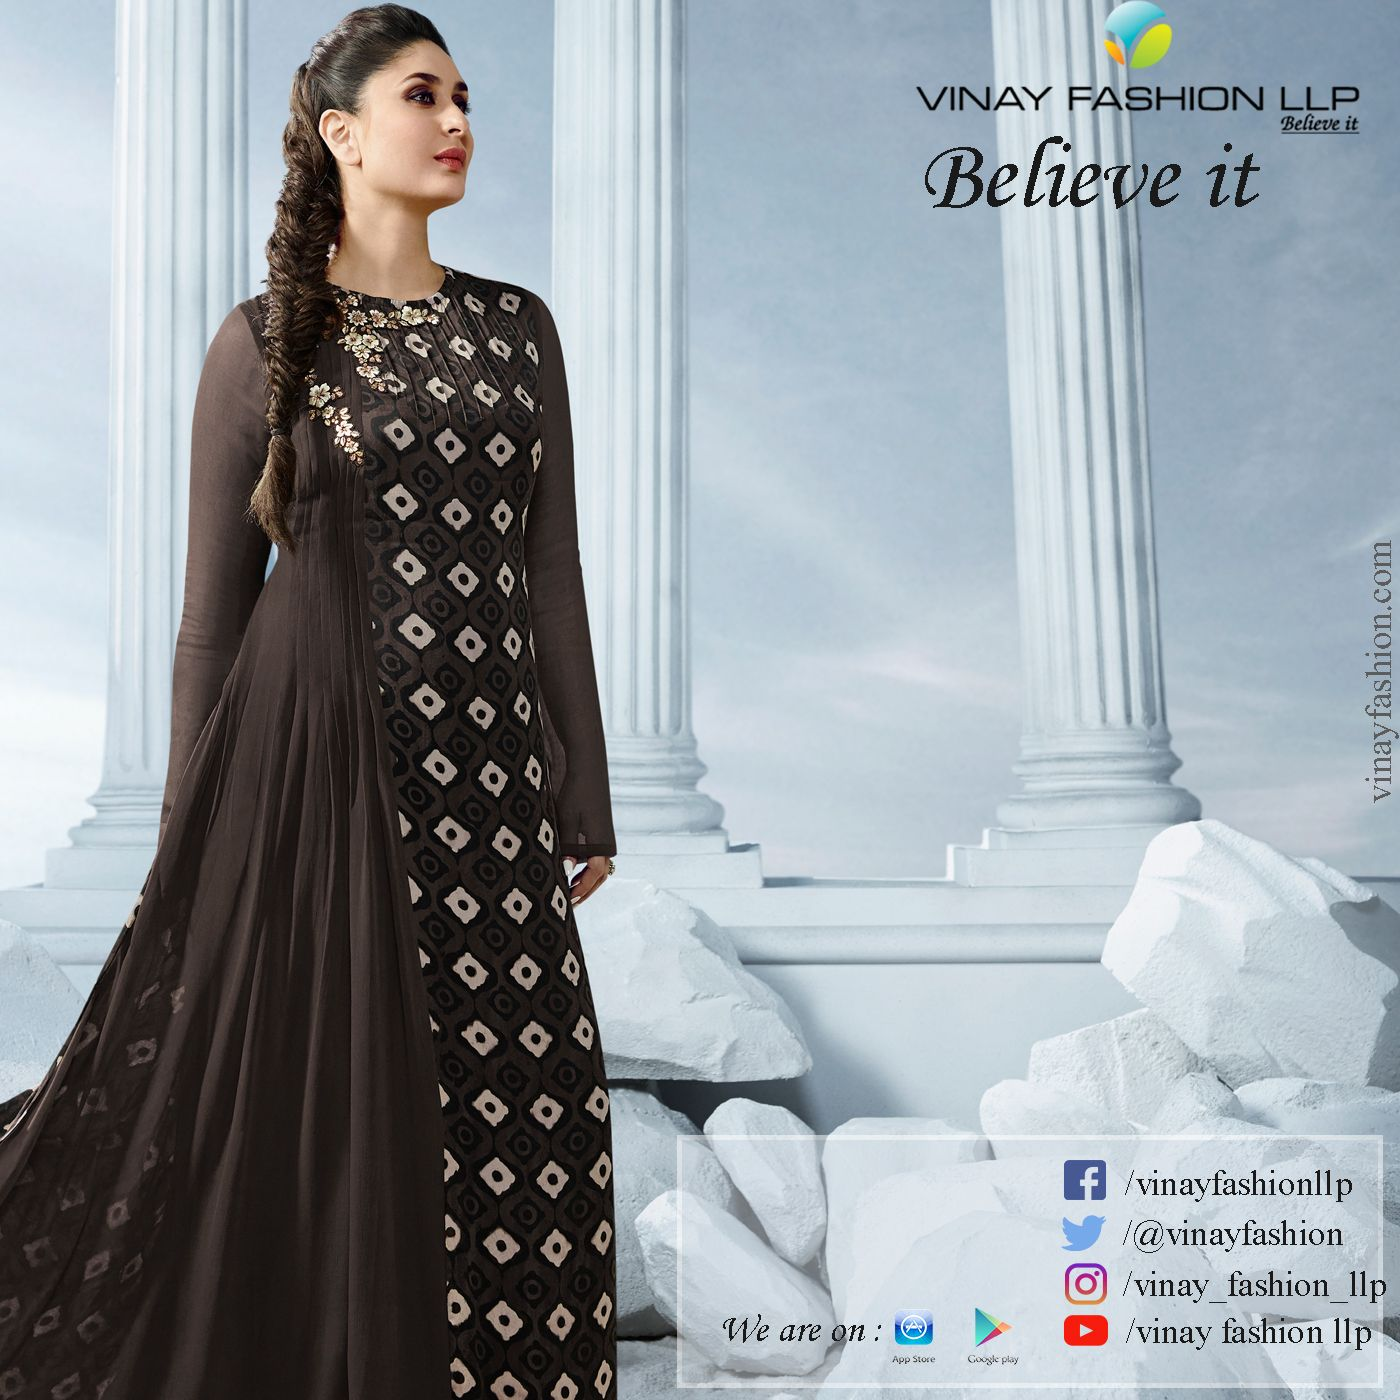 a9d89ab68b Pin by Vinay Fashion Llp on Tumbaa in 2019 | Formal dresses, Dresses ...